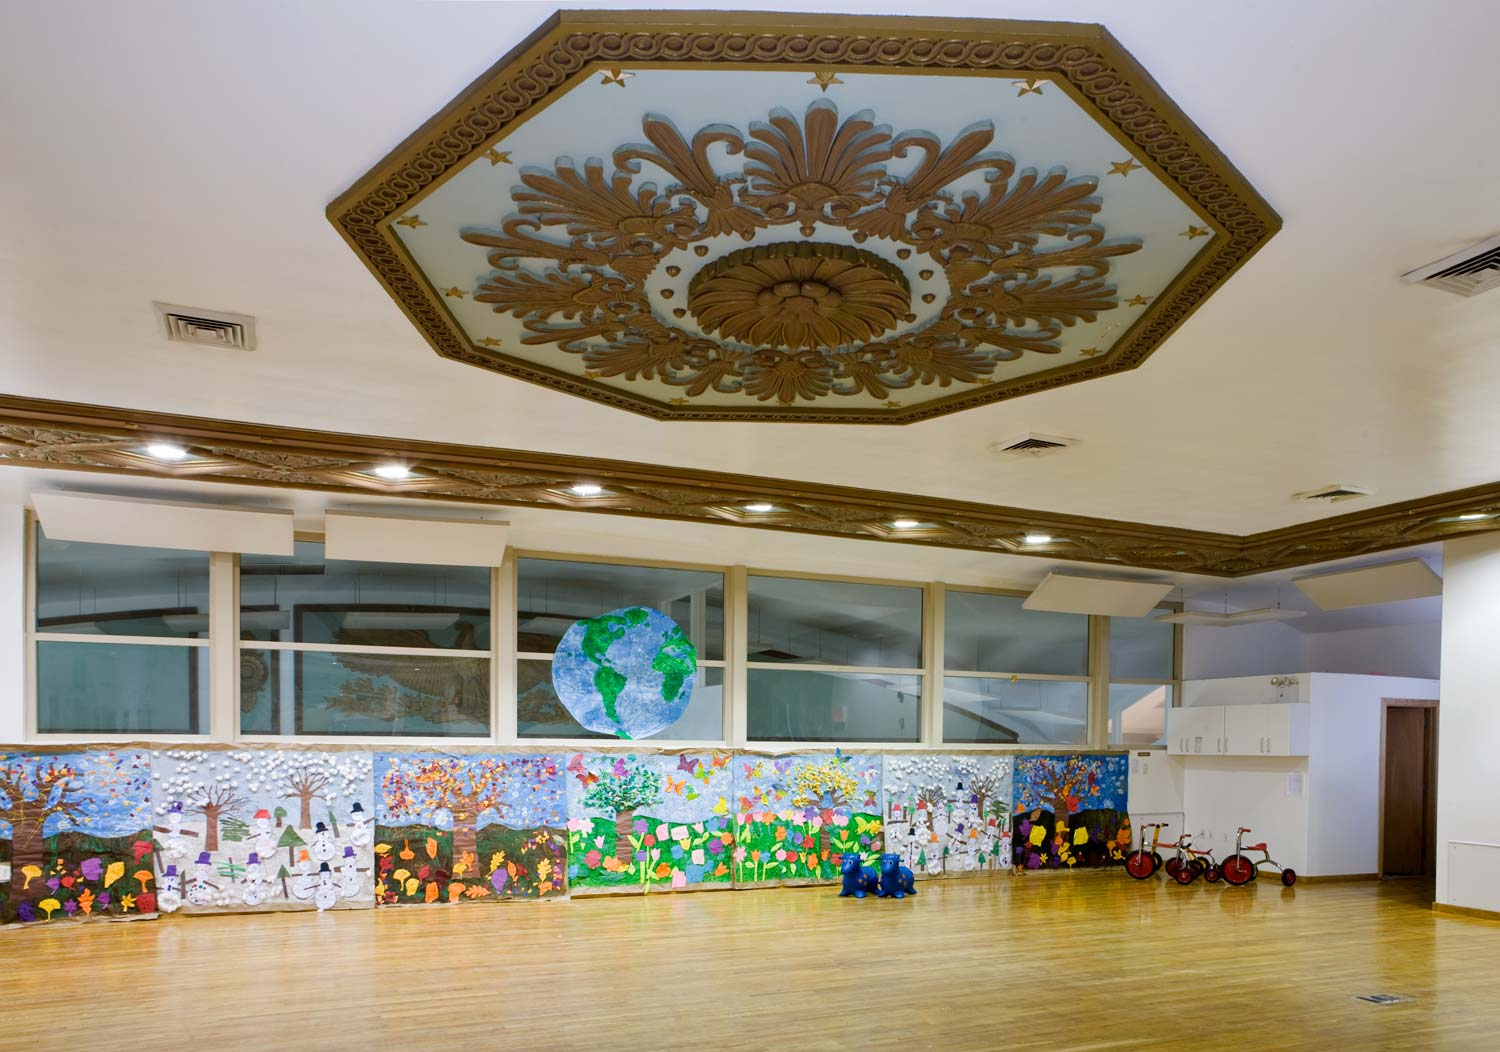 Ornate ceiling details decorated the indoor play space at the school. Project by OCV Architects.